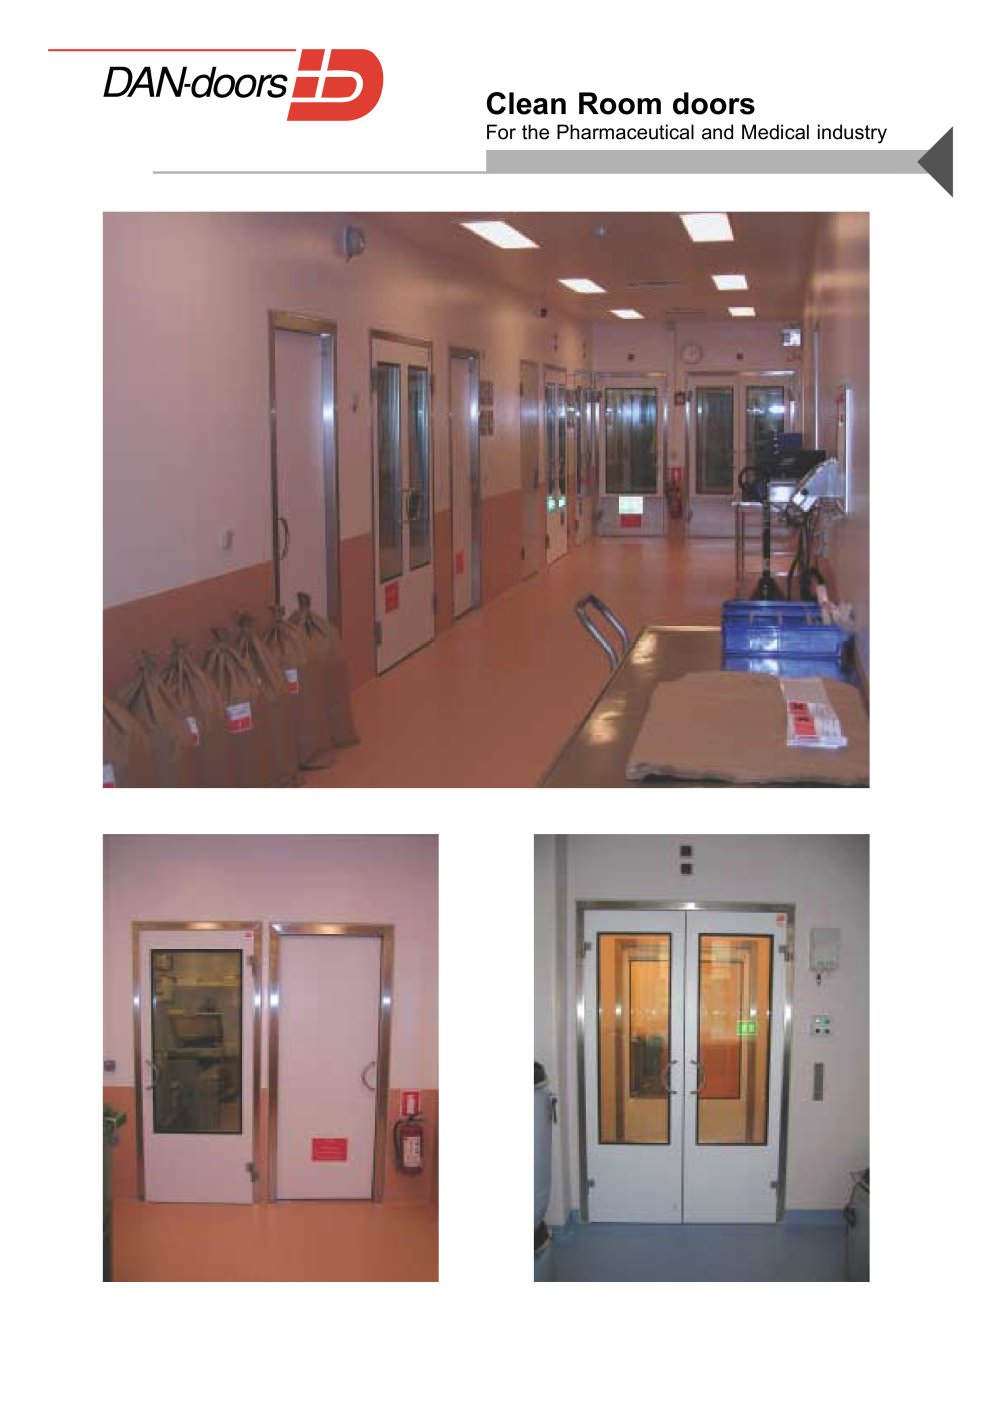 Clean Room doors - 1 / 4 Pages  sc 1 st  Catalogues Directindustry & Clean Room doors - DAN-doors - PDF Catalogue | Technical ...